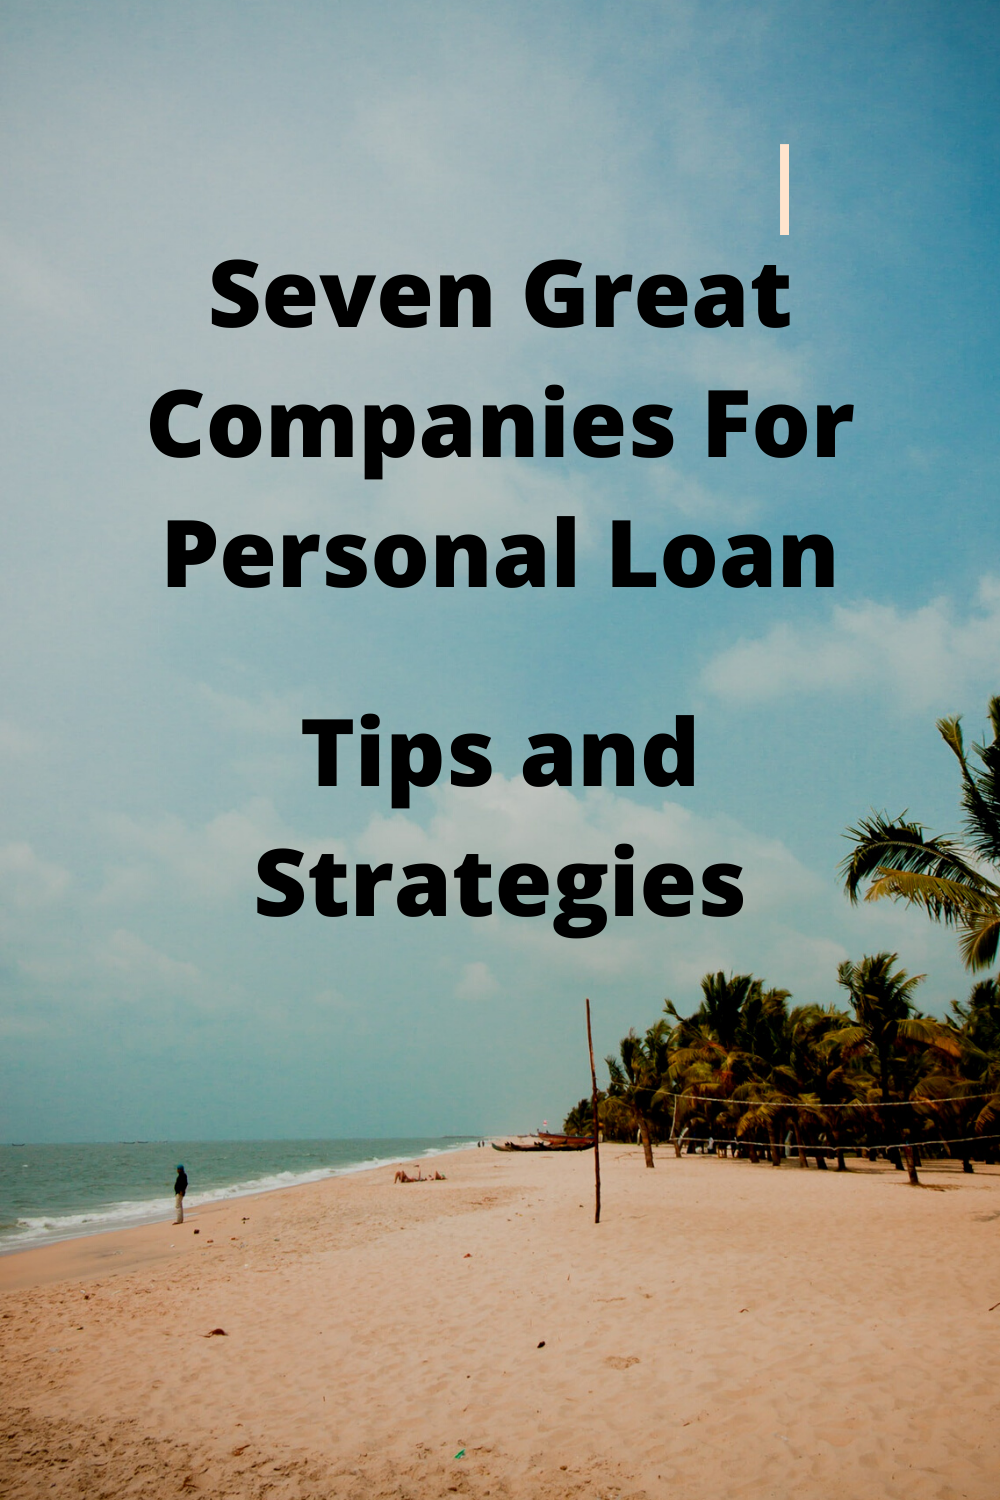 Tips For Seven Best Companies For Personal Loans In 2020 Personal Loans Loan Loan Company